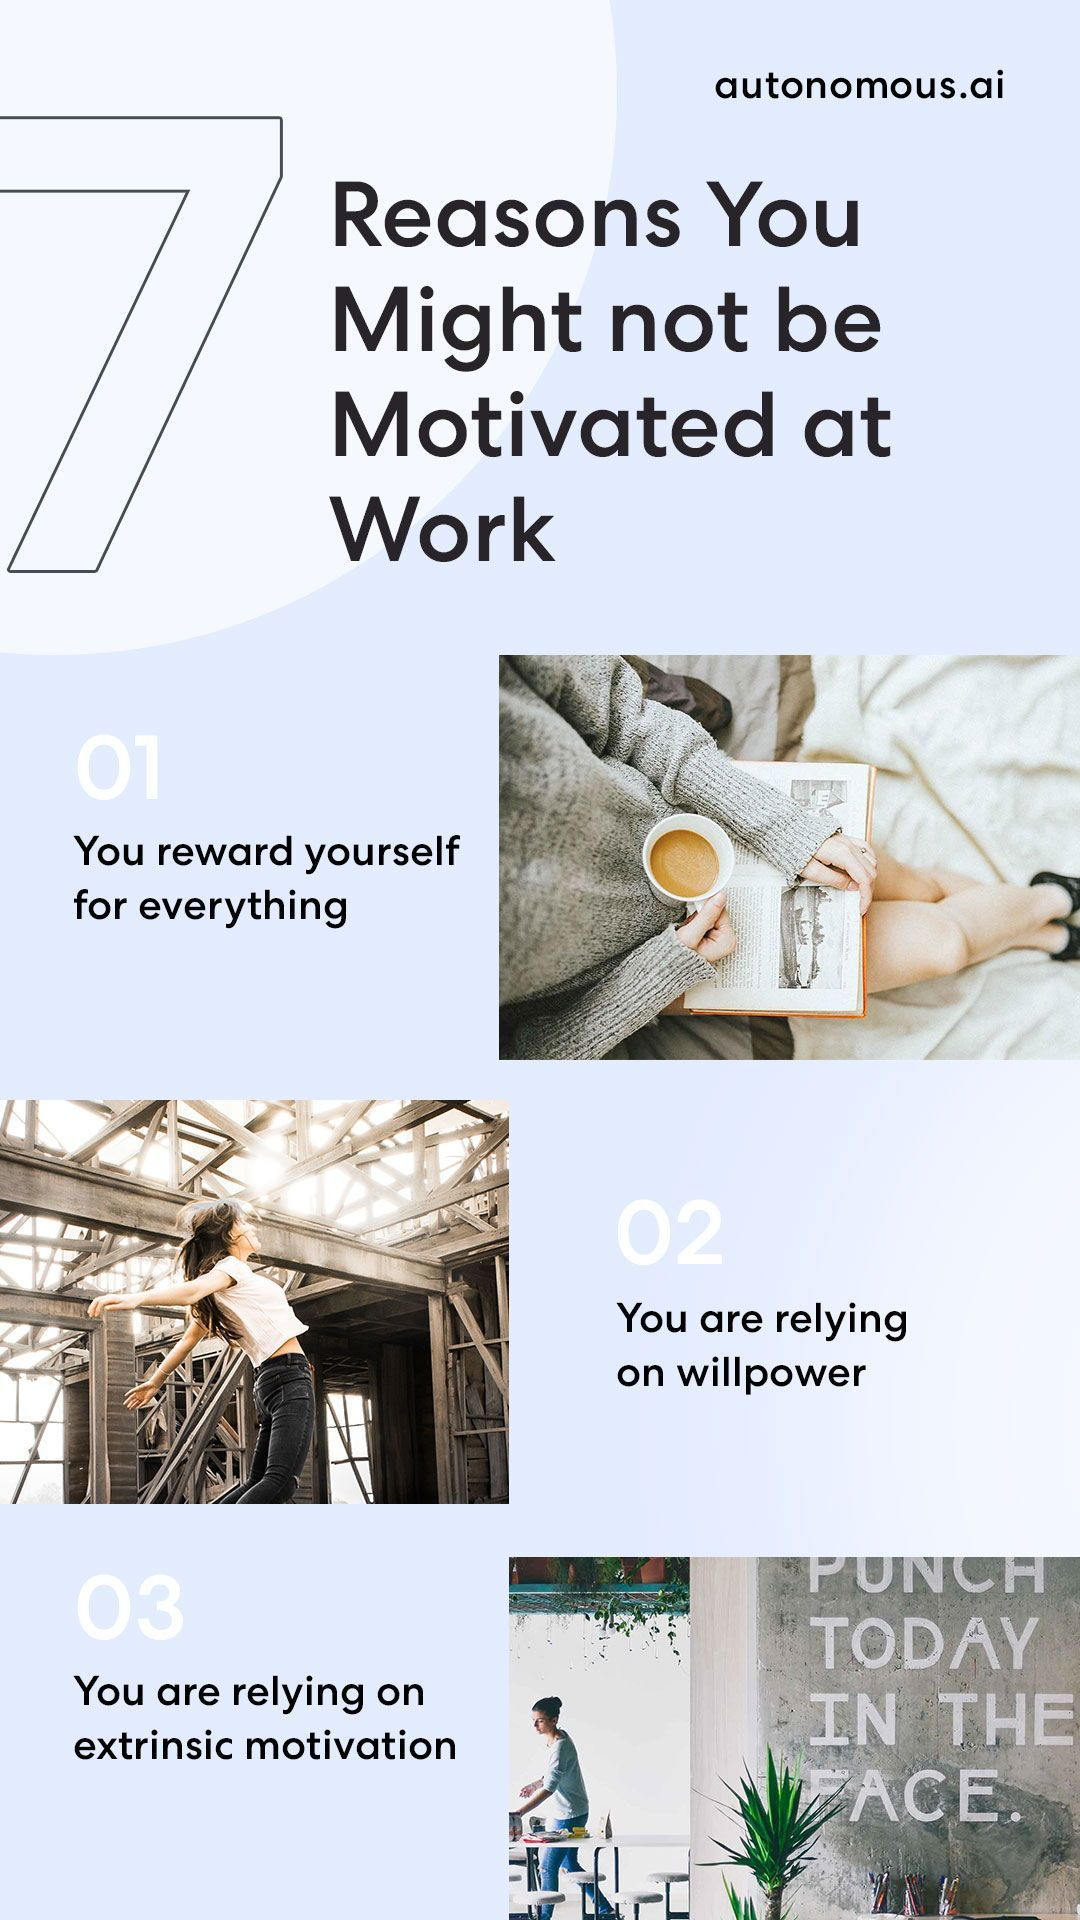 7 Reasons You Might not be Motivated at Work | Autonomous